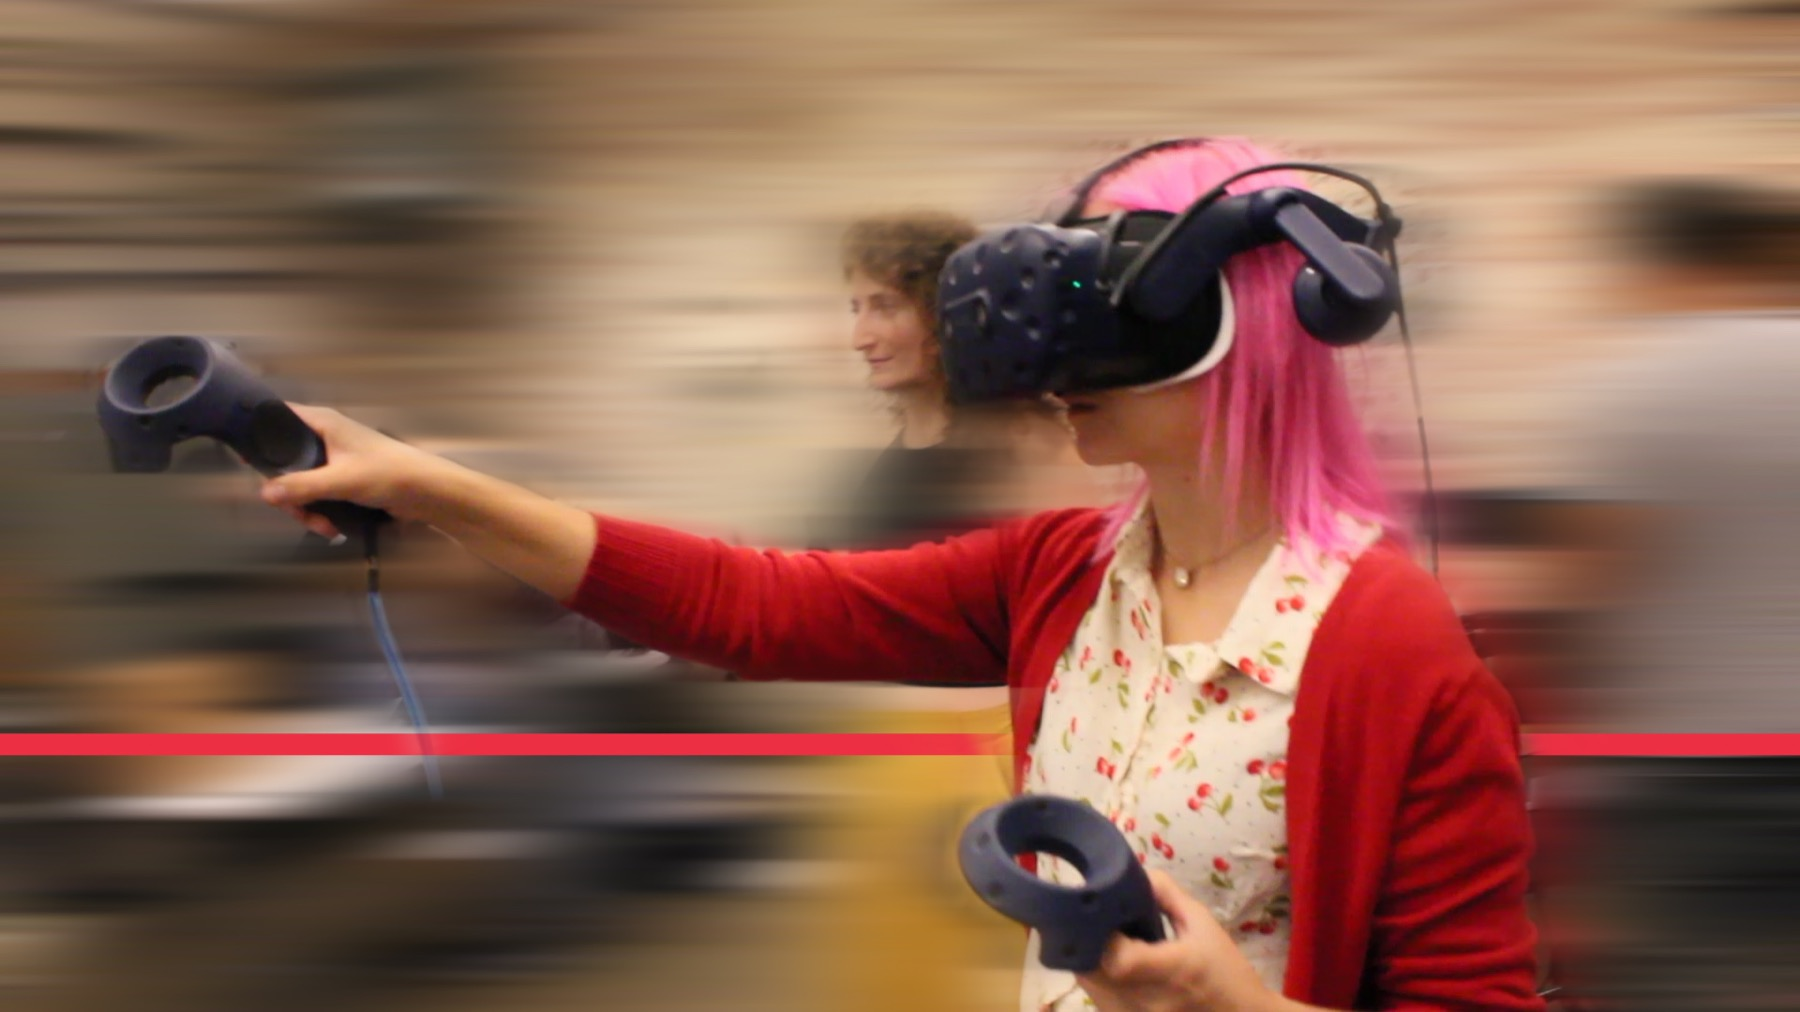 A woman using VR